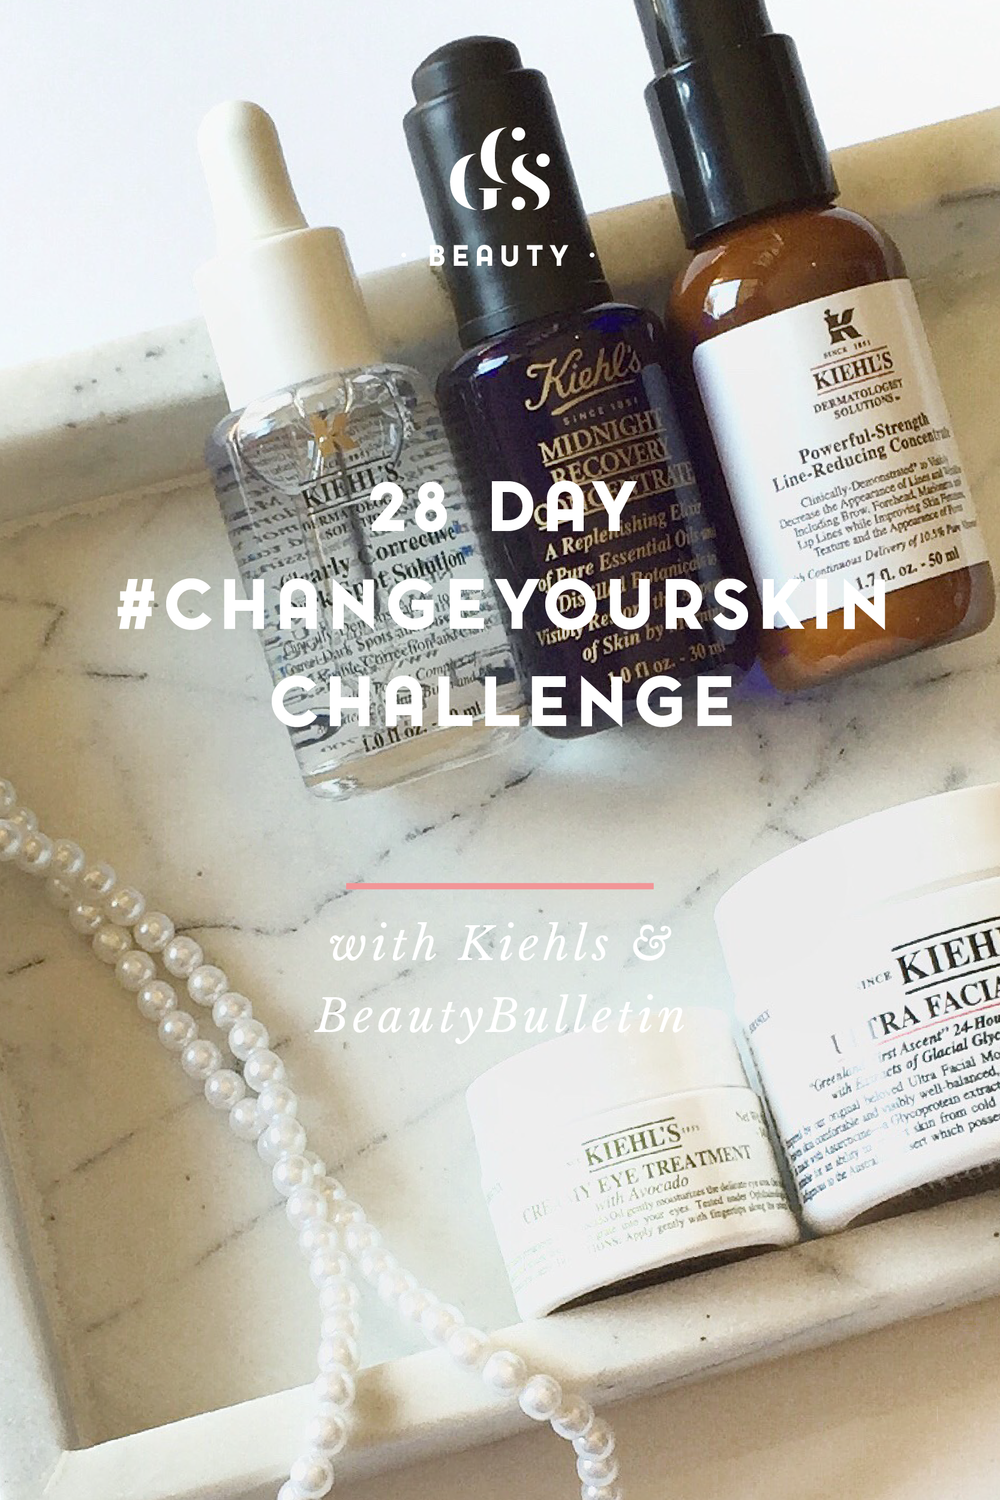 28 Day #ChangeYourSkin Challenge with Kiehls & BeautyBulletin by Roxy Hutton of CGScreative